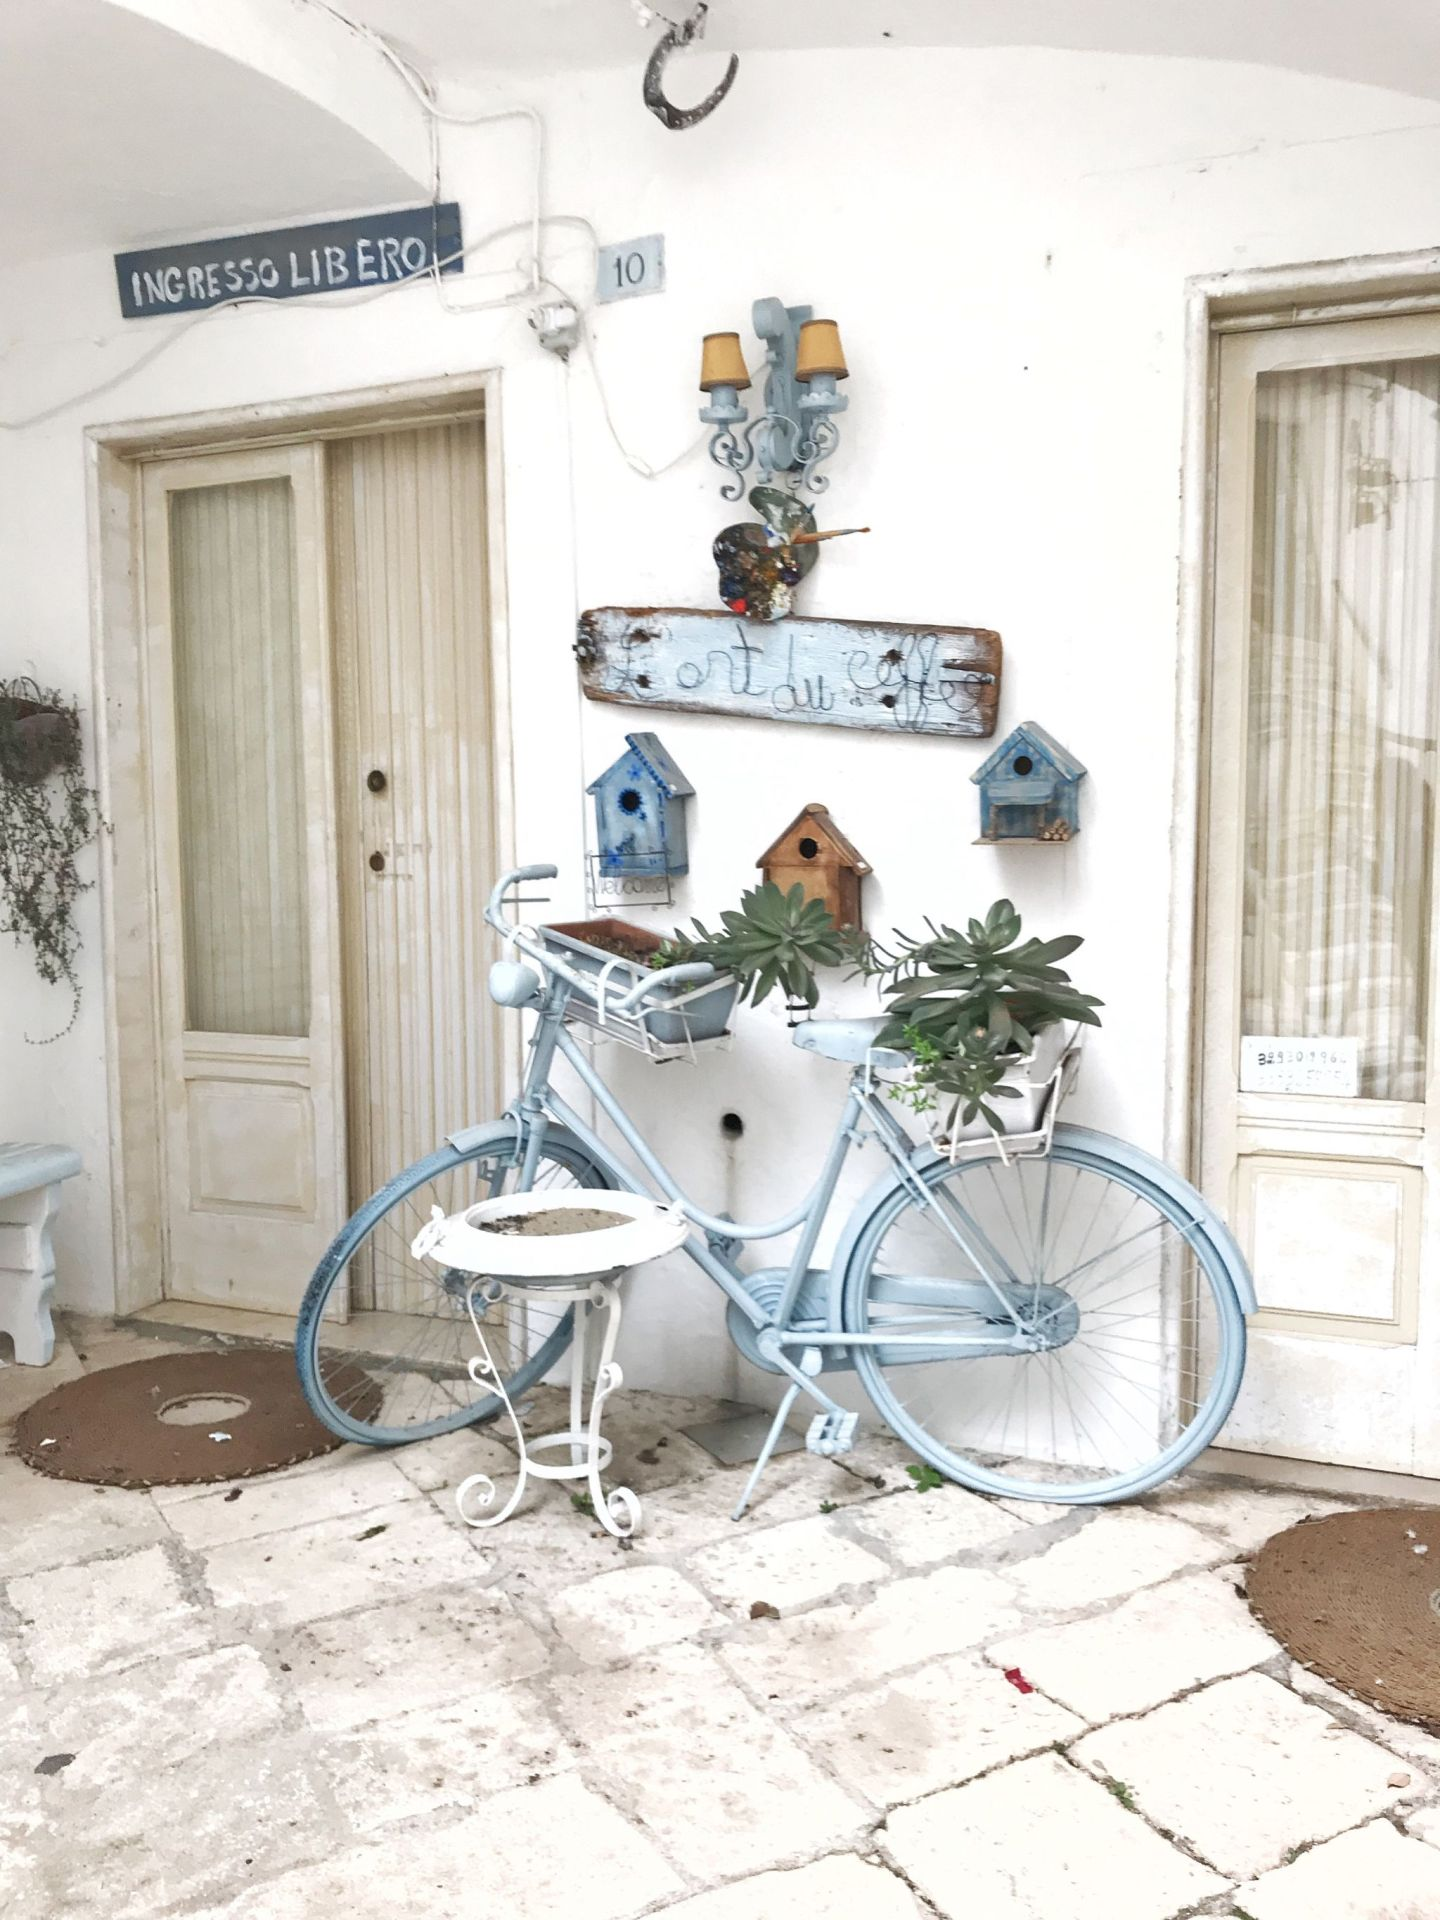 Decorative bike in Locorotondo